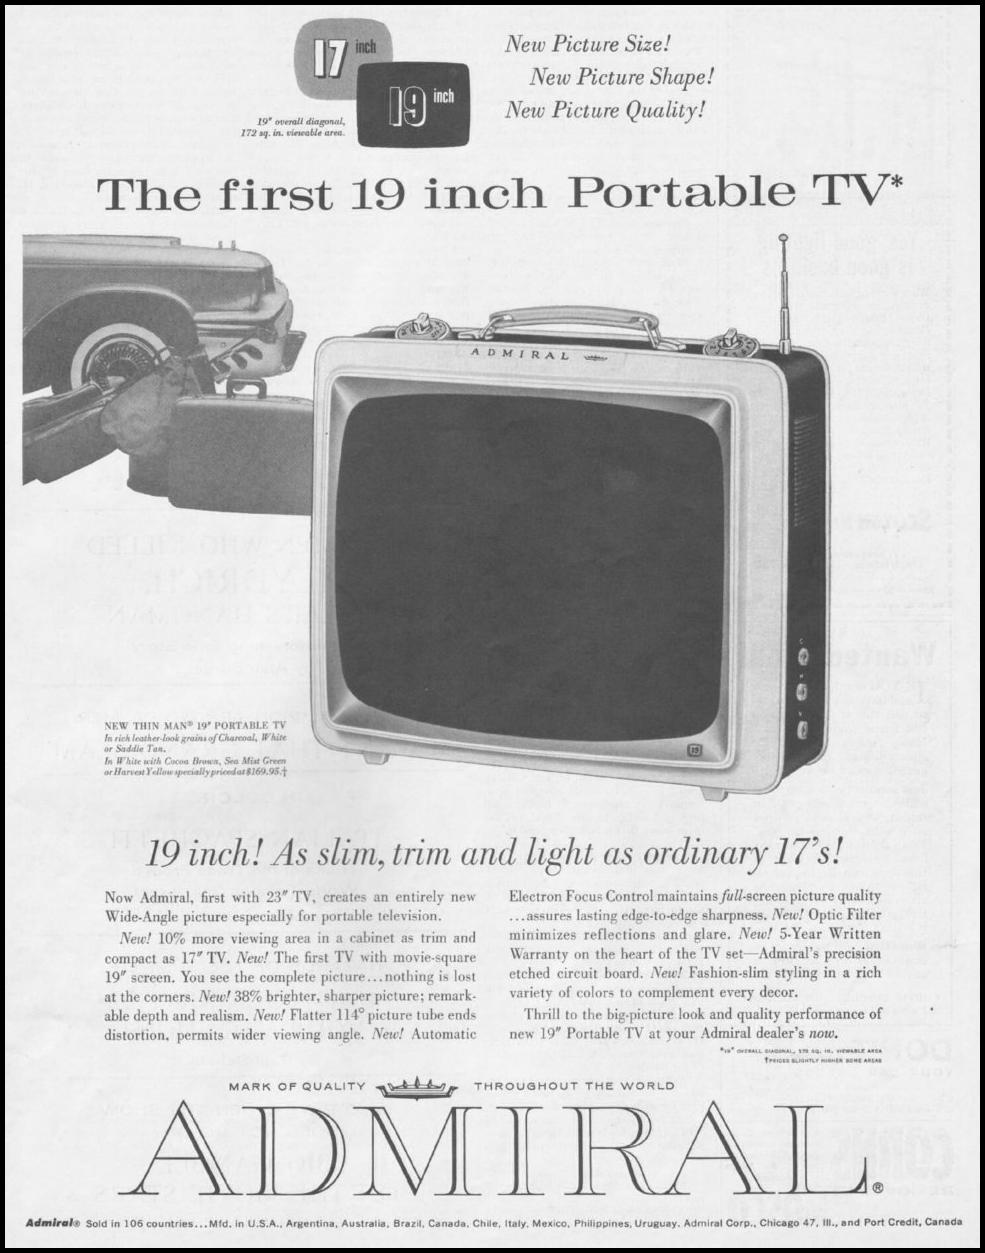 ADMIRAL PORTABLE TELEVISIONS SATURDAY EVENING POST 06/11/1960 p. 111